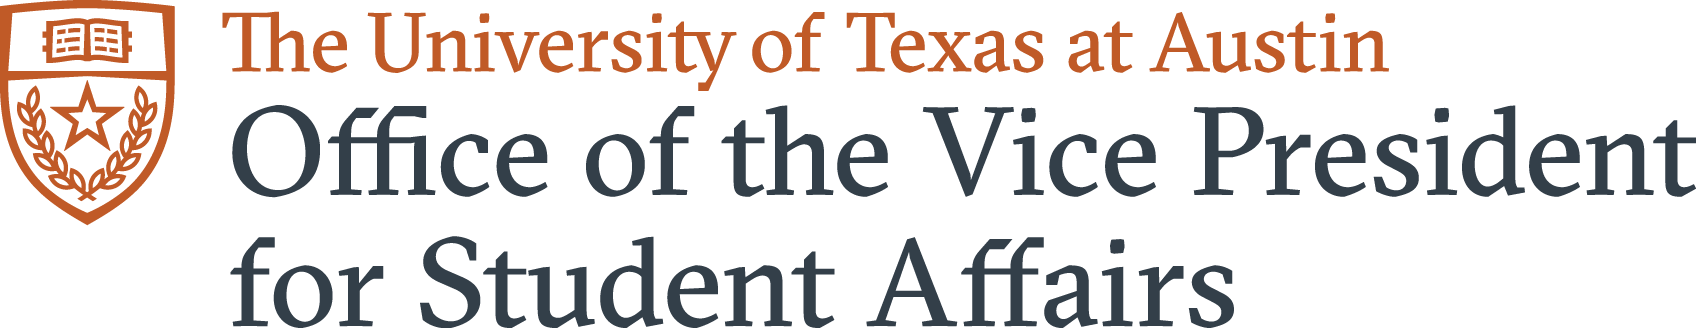 Office of the Vice President for Student Affairs logo